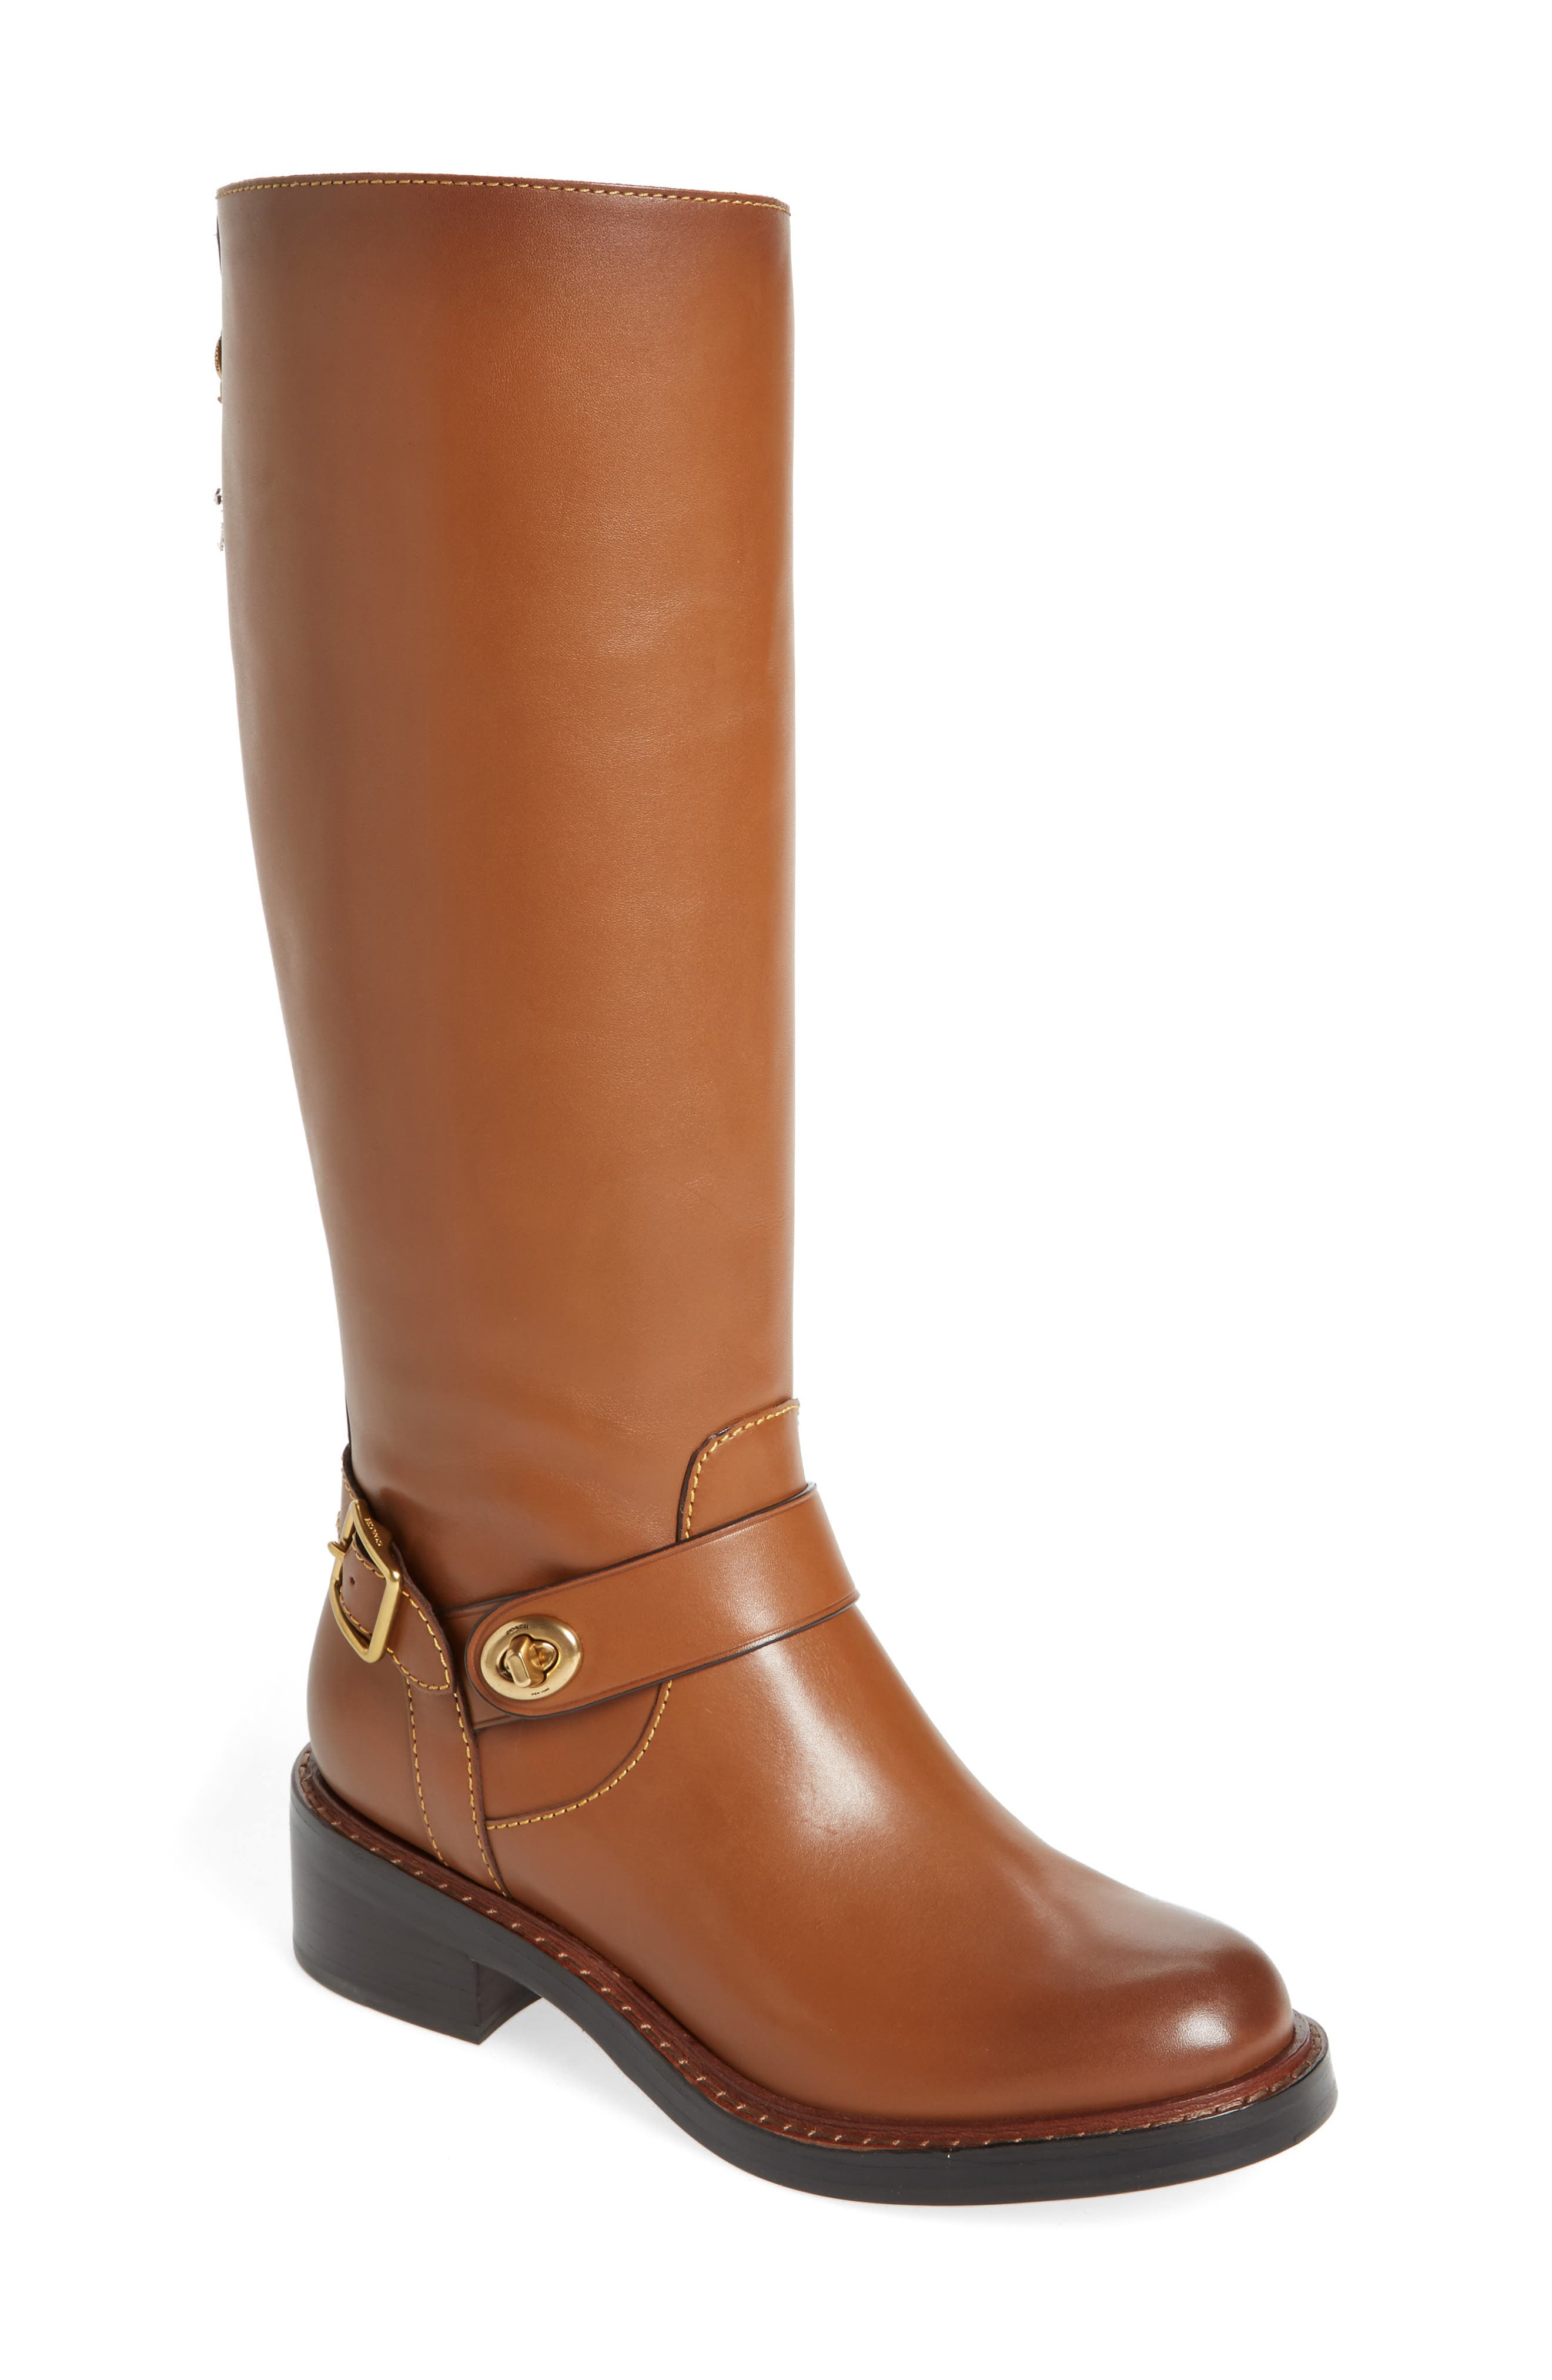 Alternate Image 1 Selected - COACH Sutton Riding Boot (Women)